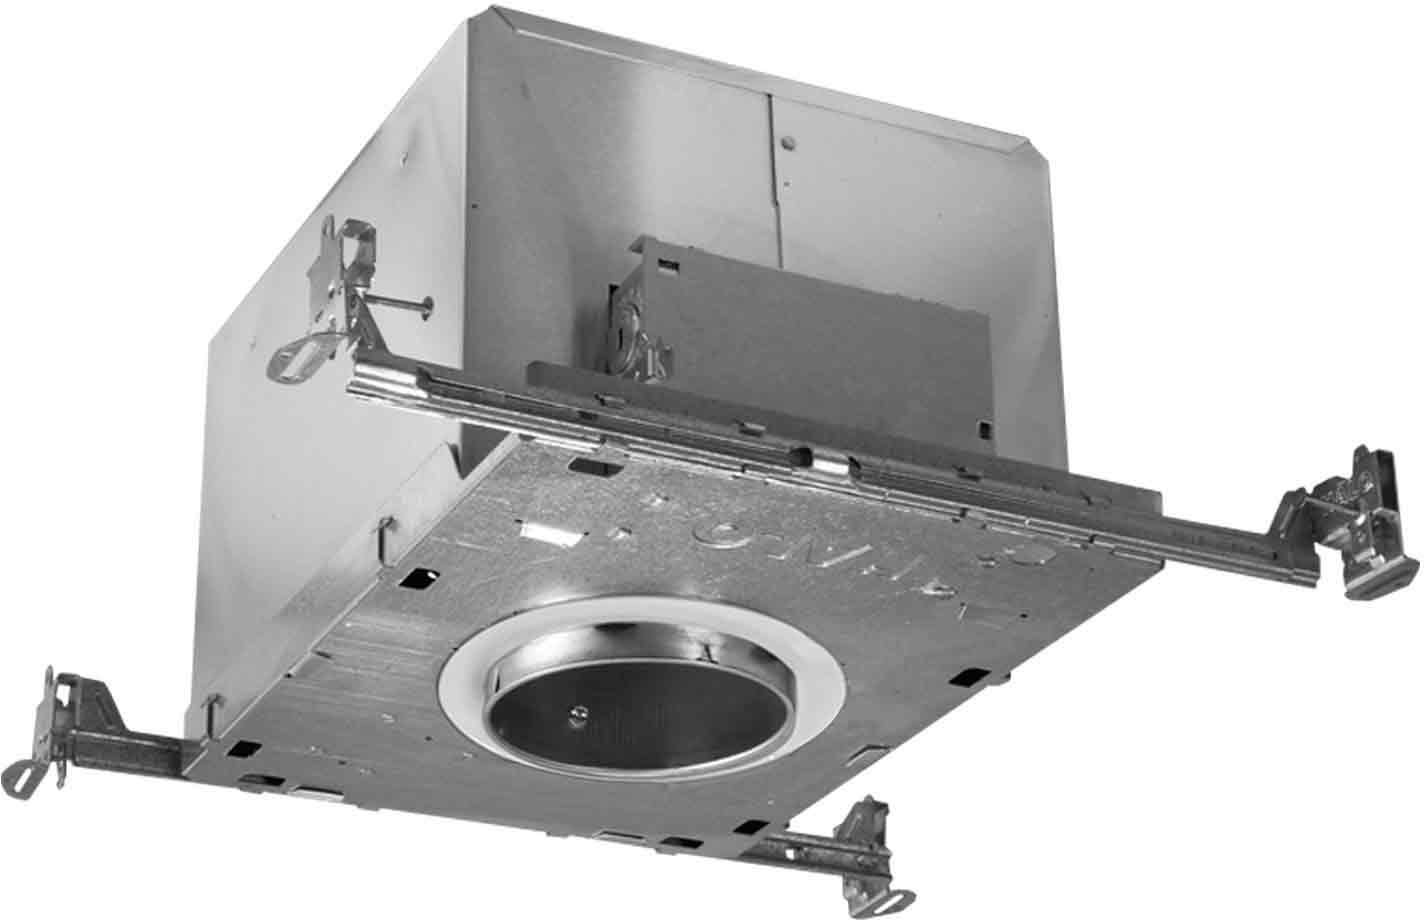 Halo recessed h1499icat 4 inch housing ic air tite 12 volt low halo recessed h1499icat 4 inch housing ic air tite 12 volt low voltage close to ceiling light fixtures amazon aloadofball Gallery